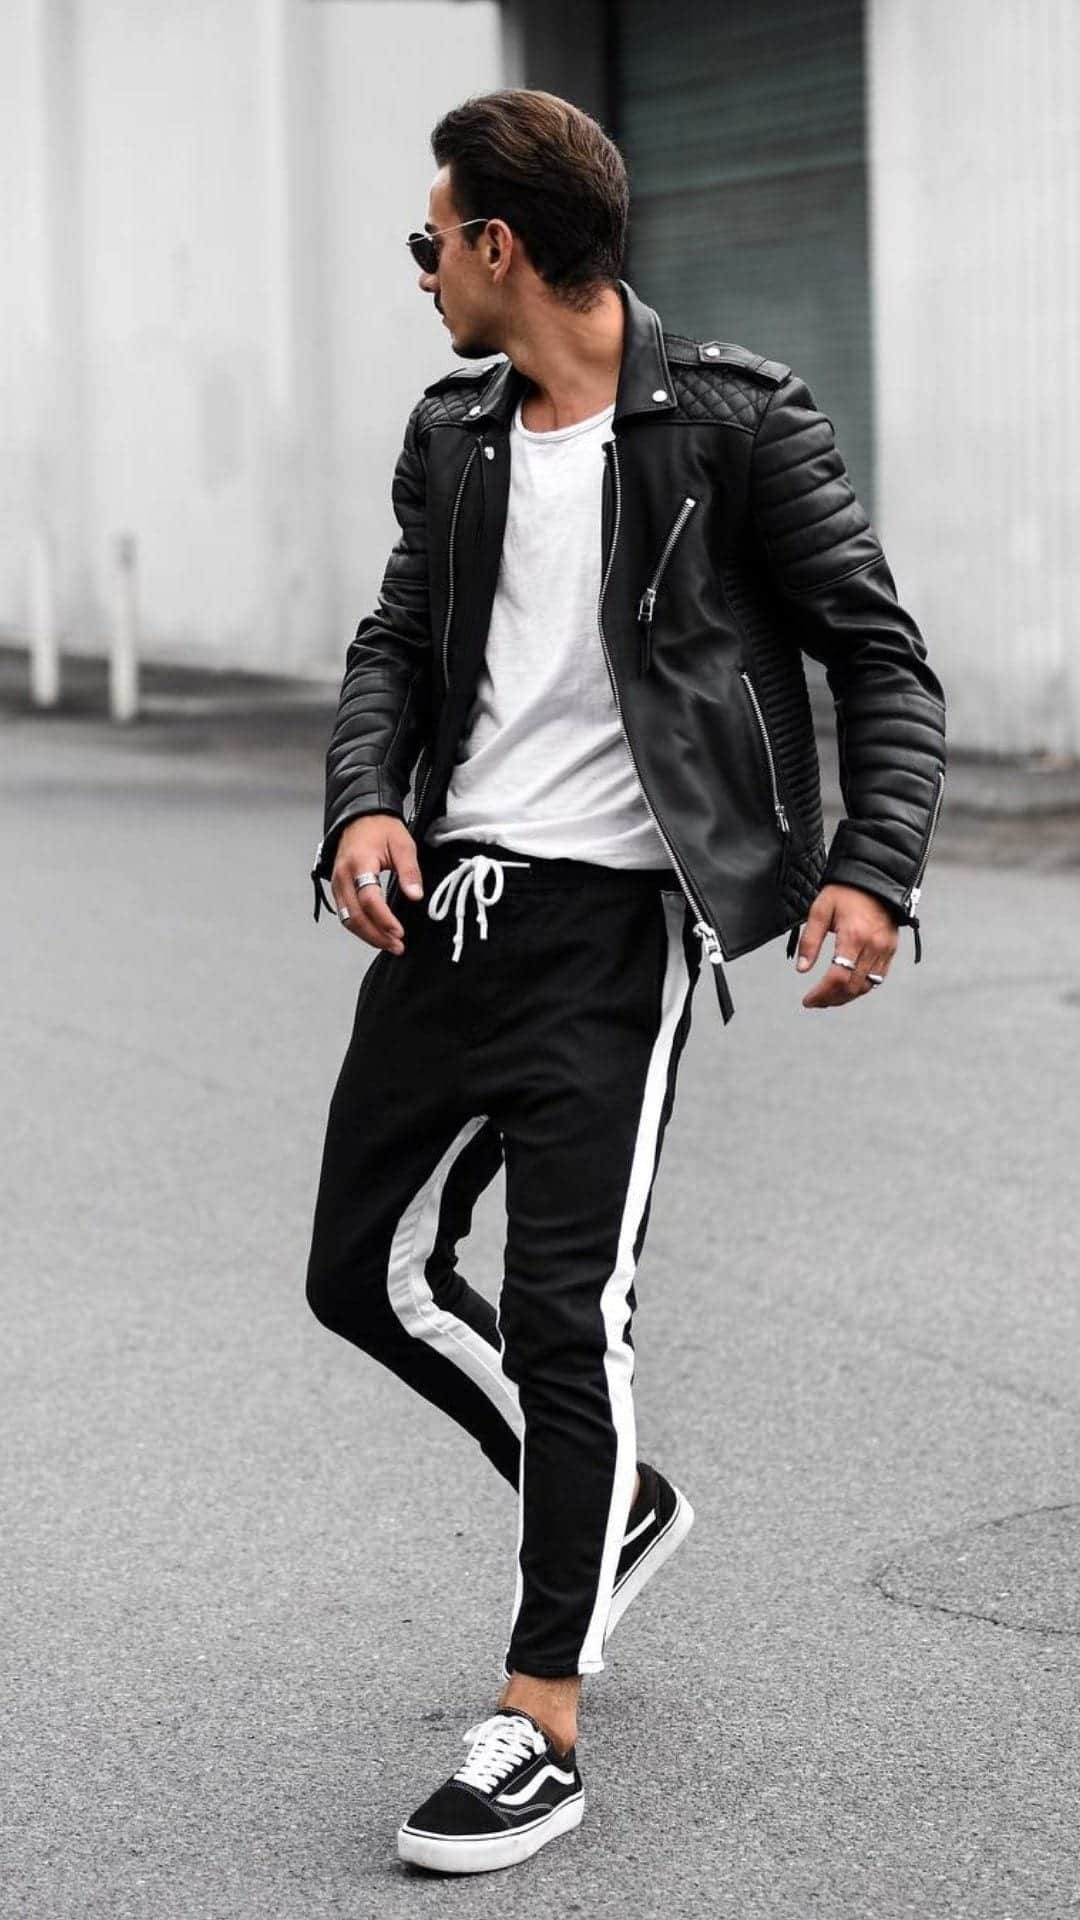 Casual_outfits_for_young_guys_6-1 Cute Outfits for Skinny Guys - Styling Tips With New Trends